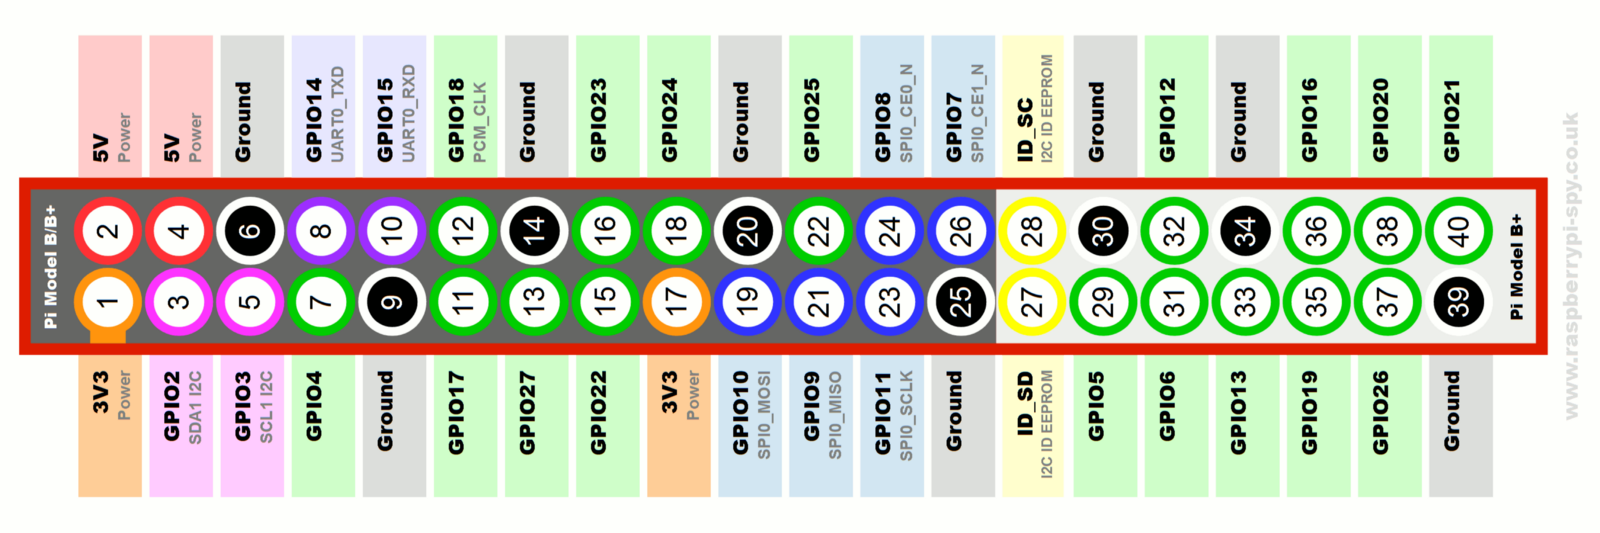 Controlling Stepper Motors Using Python With A Raspberry Pi 7 Pin Plug Wiring Diagram Uk Image From Https Raspberrypi Spycouk 2012 06 Simple Guide To The Rpi Gpio Header And Pins Pinterestca 231653974559149470 Lp